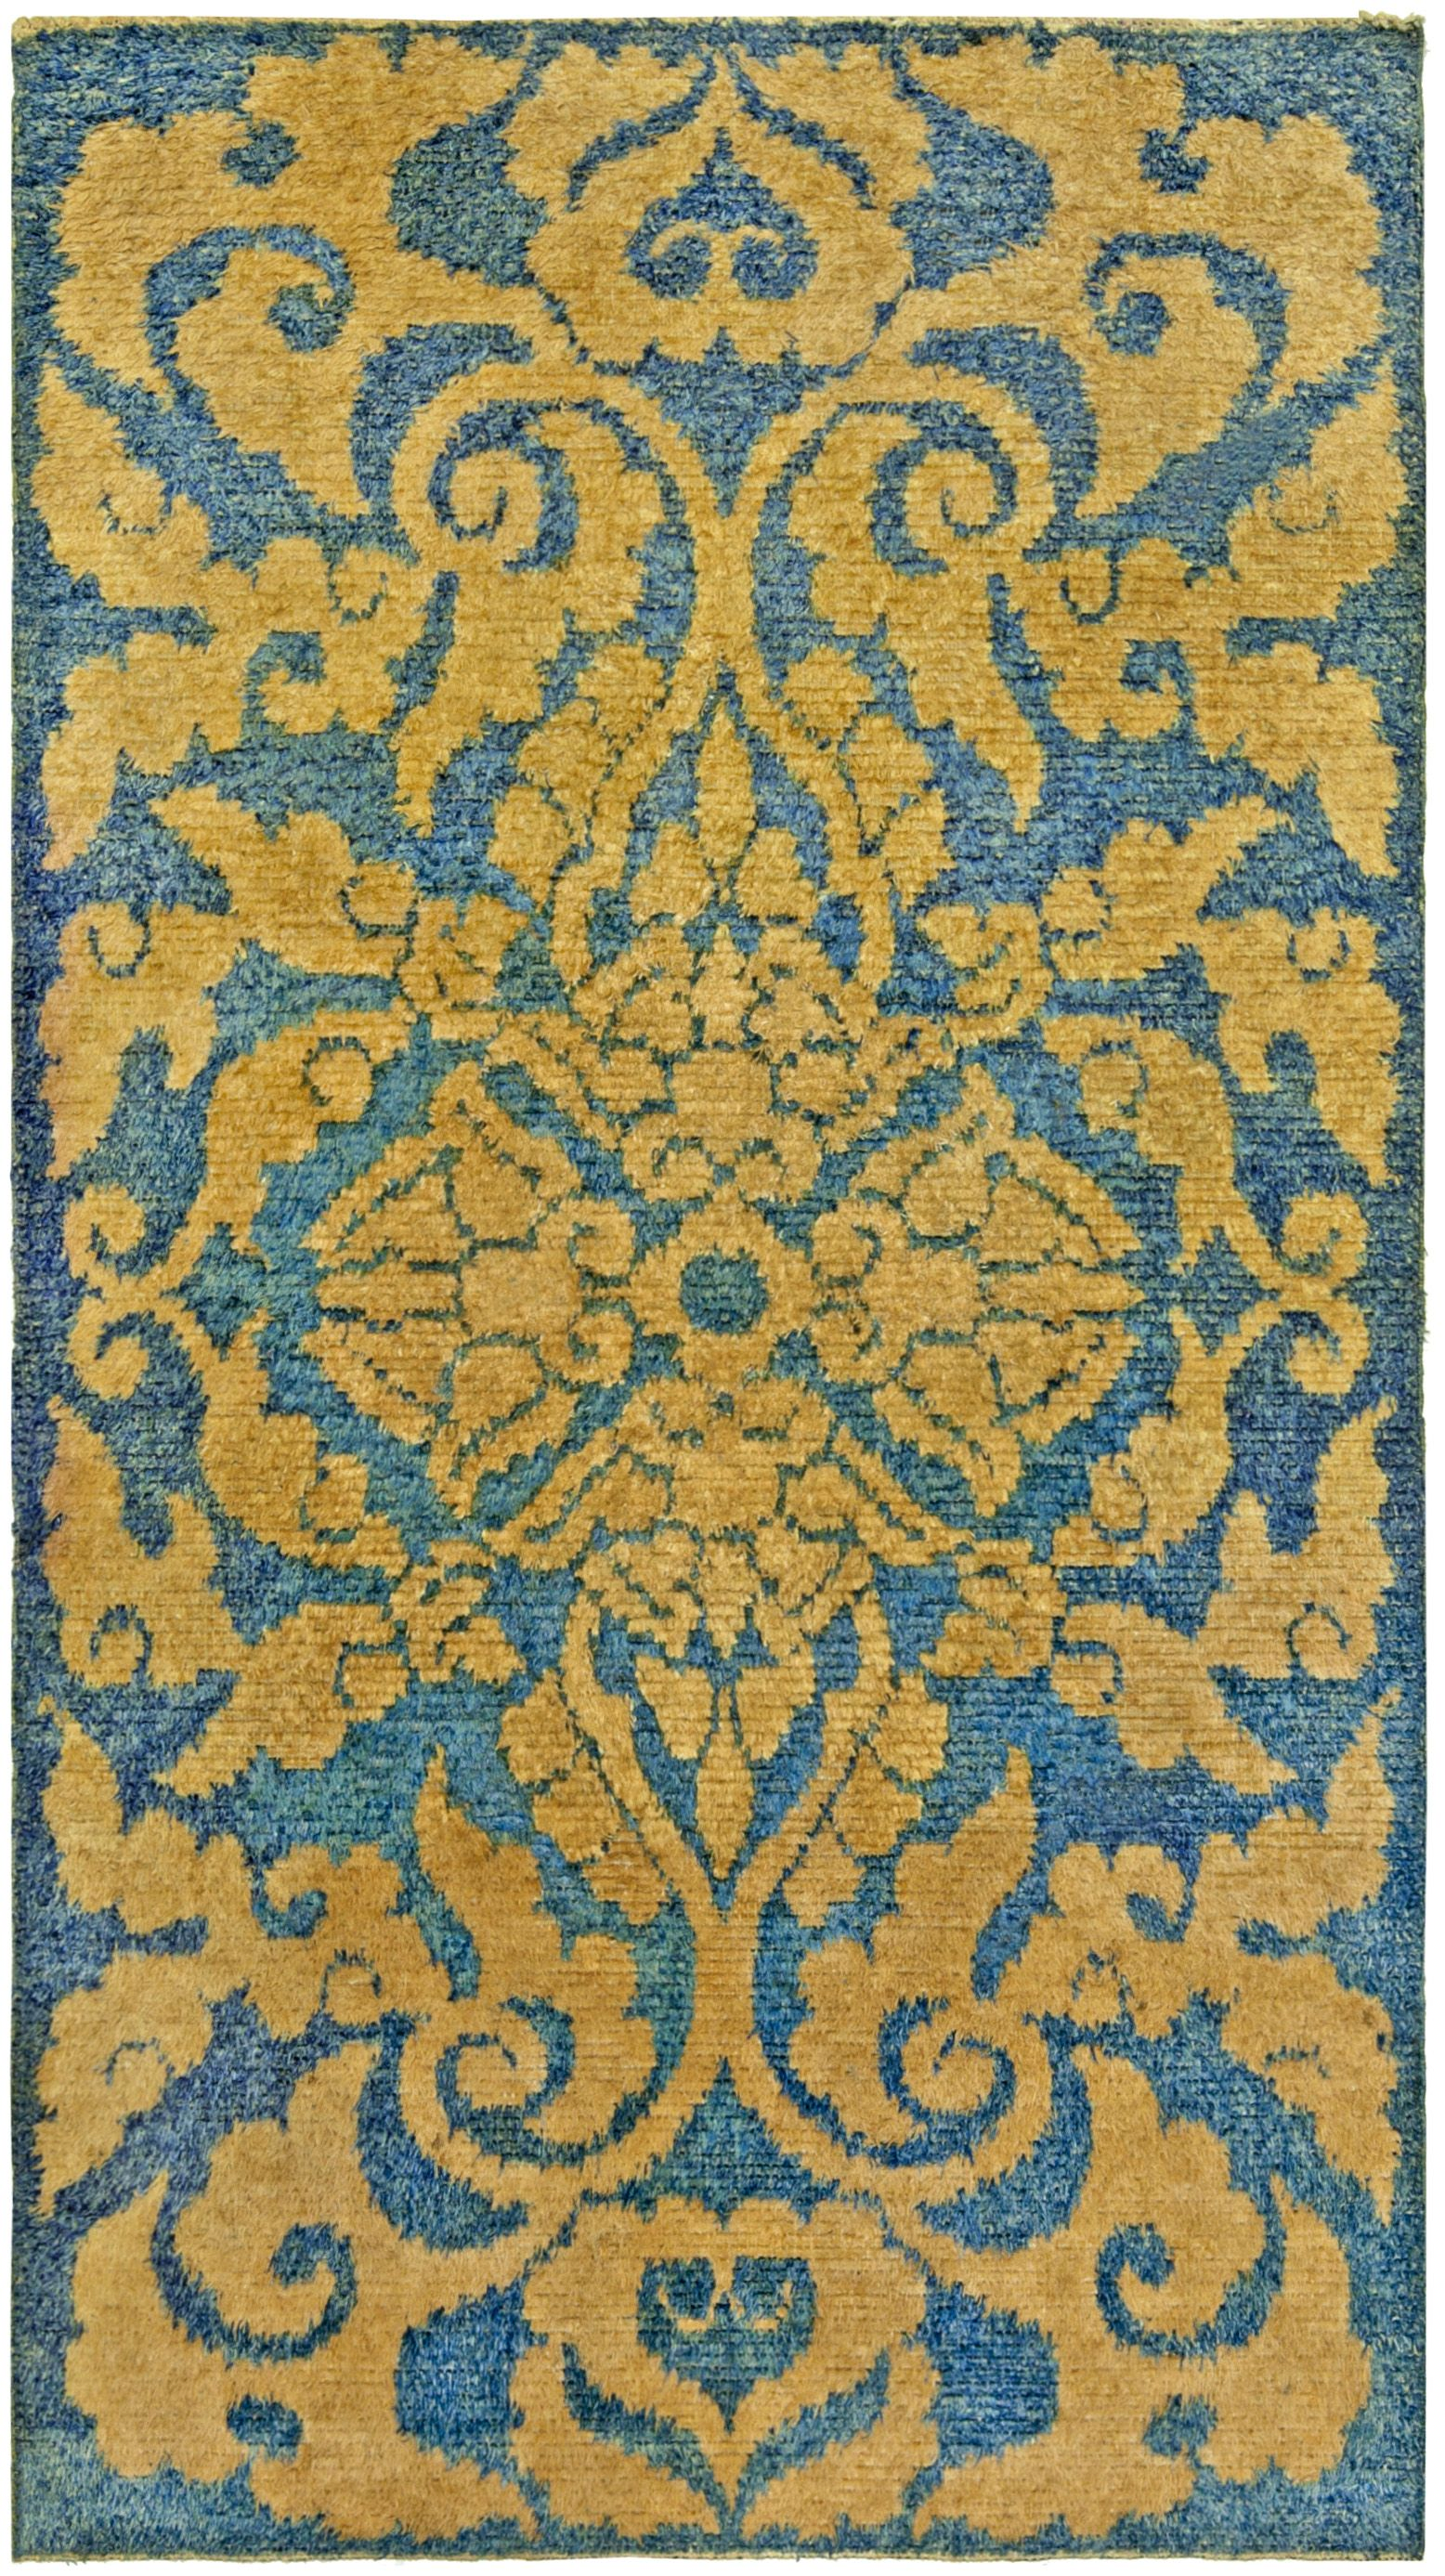 An antique Chinese rug. Price: $6,000